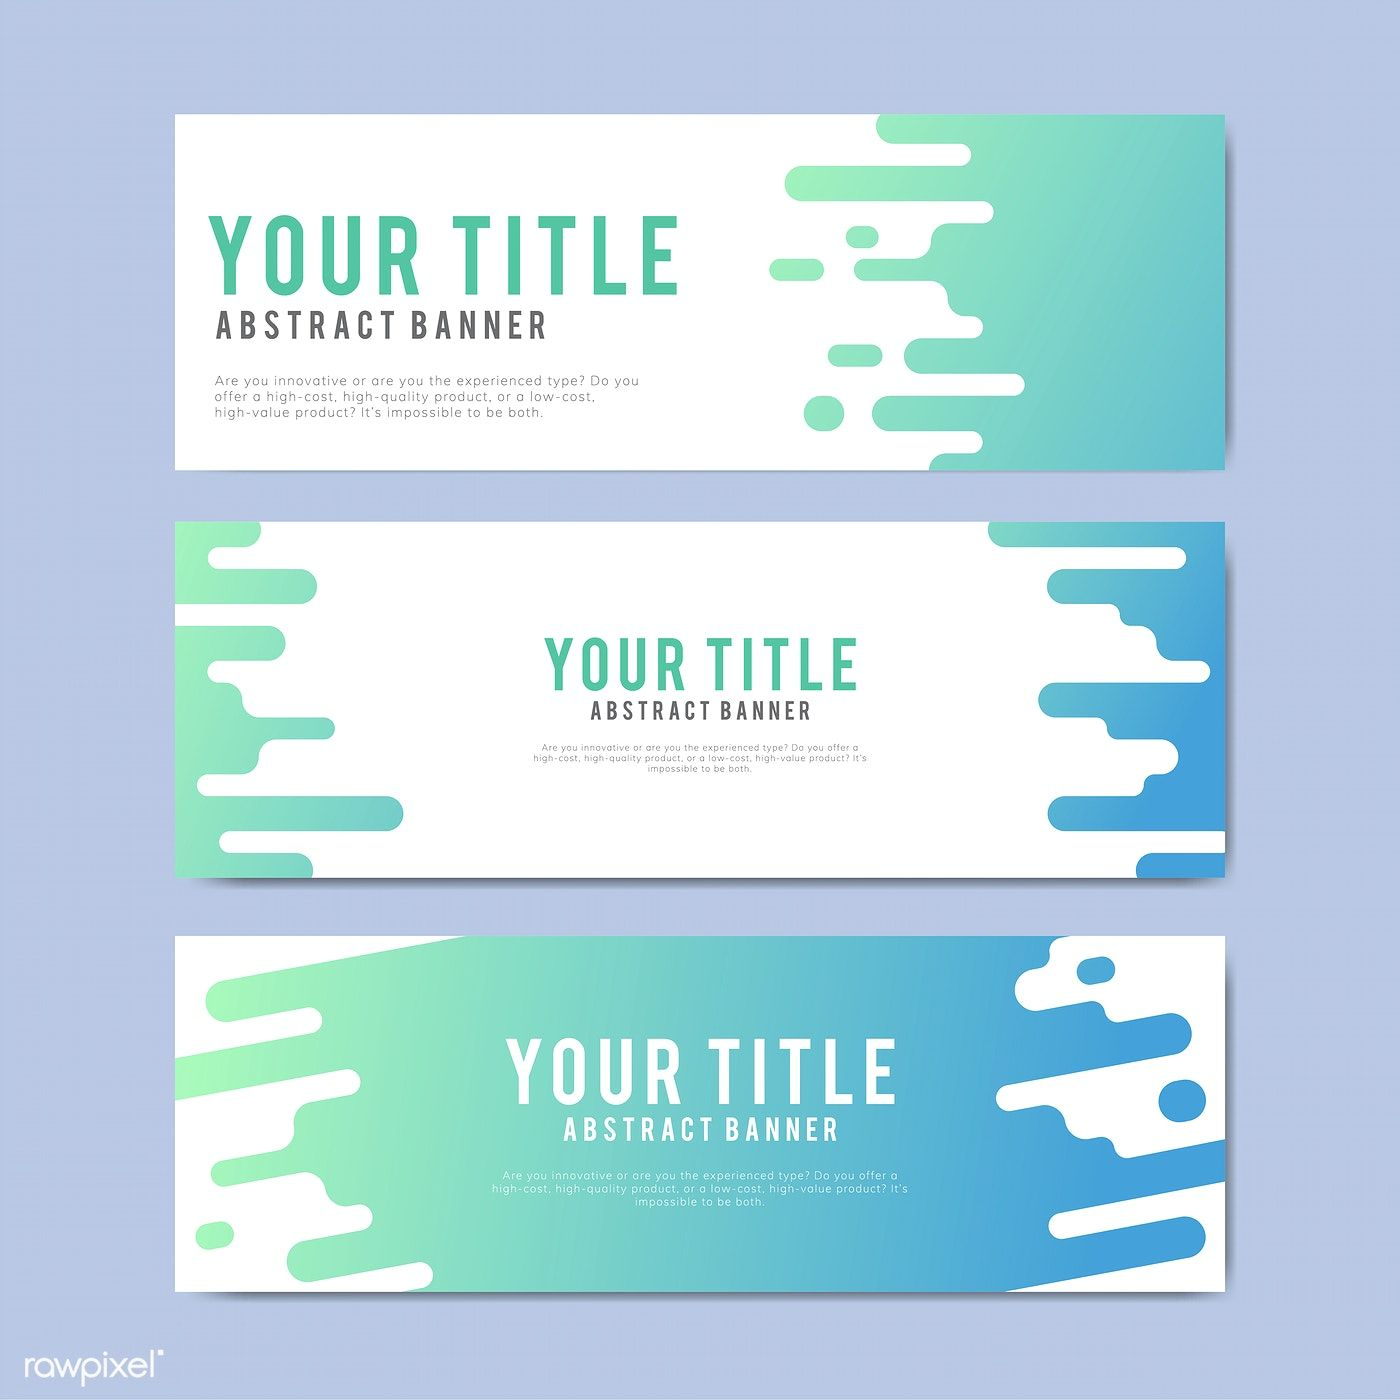 Colorful And Abstract Banner Design Templates Free Image By Rawpixel Com Banner Design Layout Banner Design Template Design